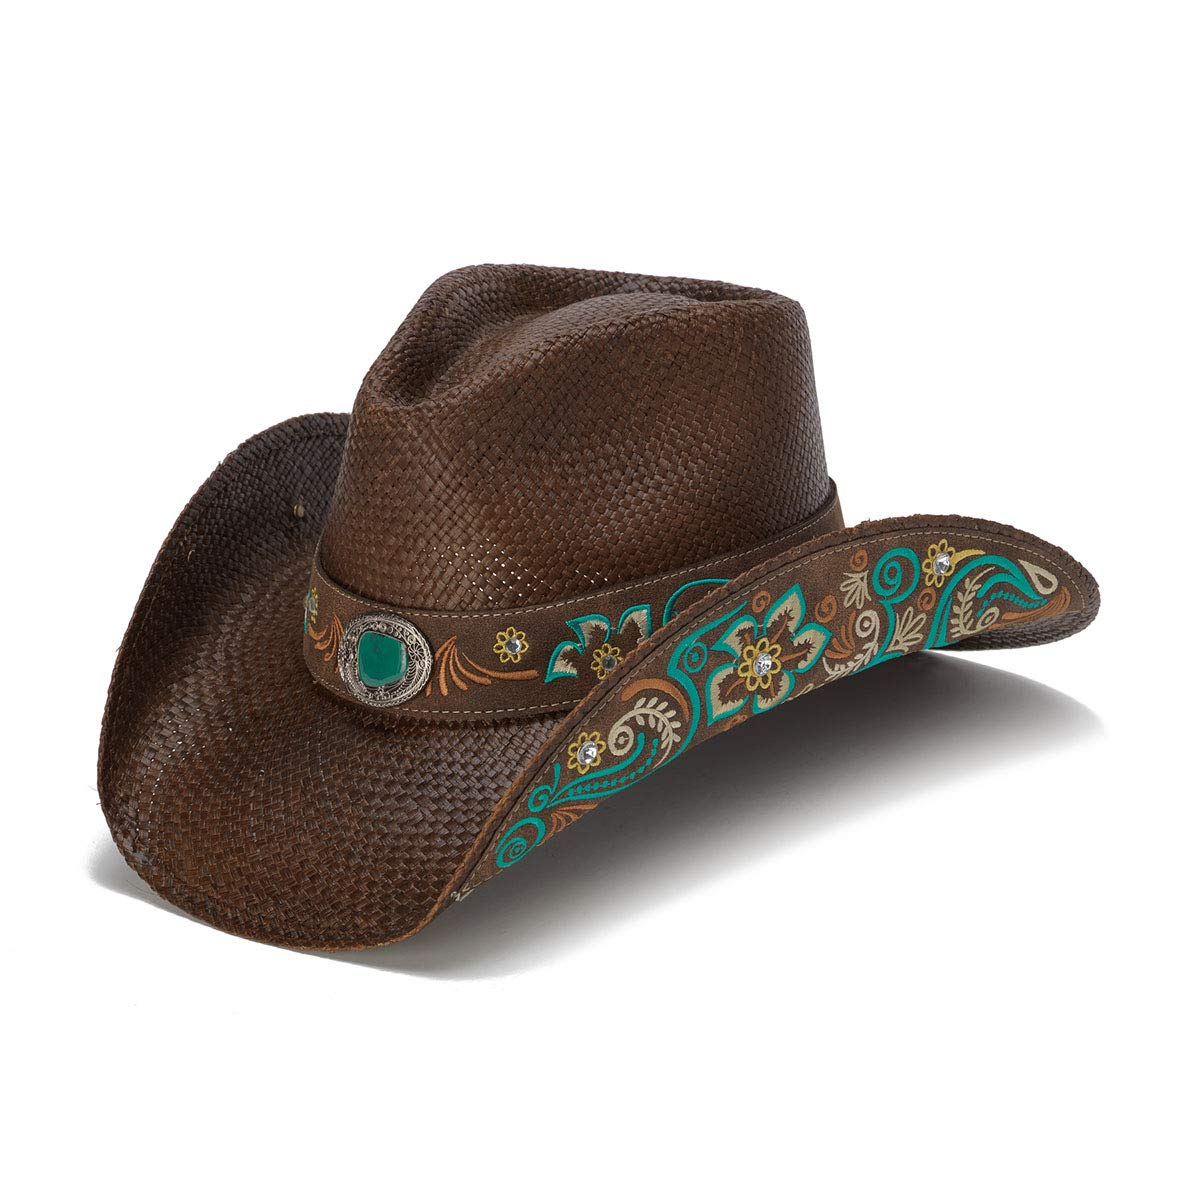 Stampede Hats Women's Sky Action Blue Floral Embroidered Western Hat M Brown